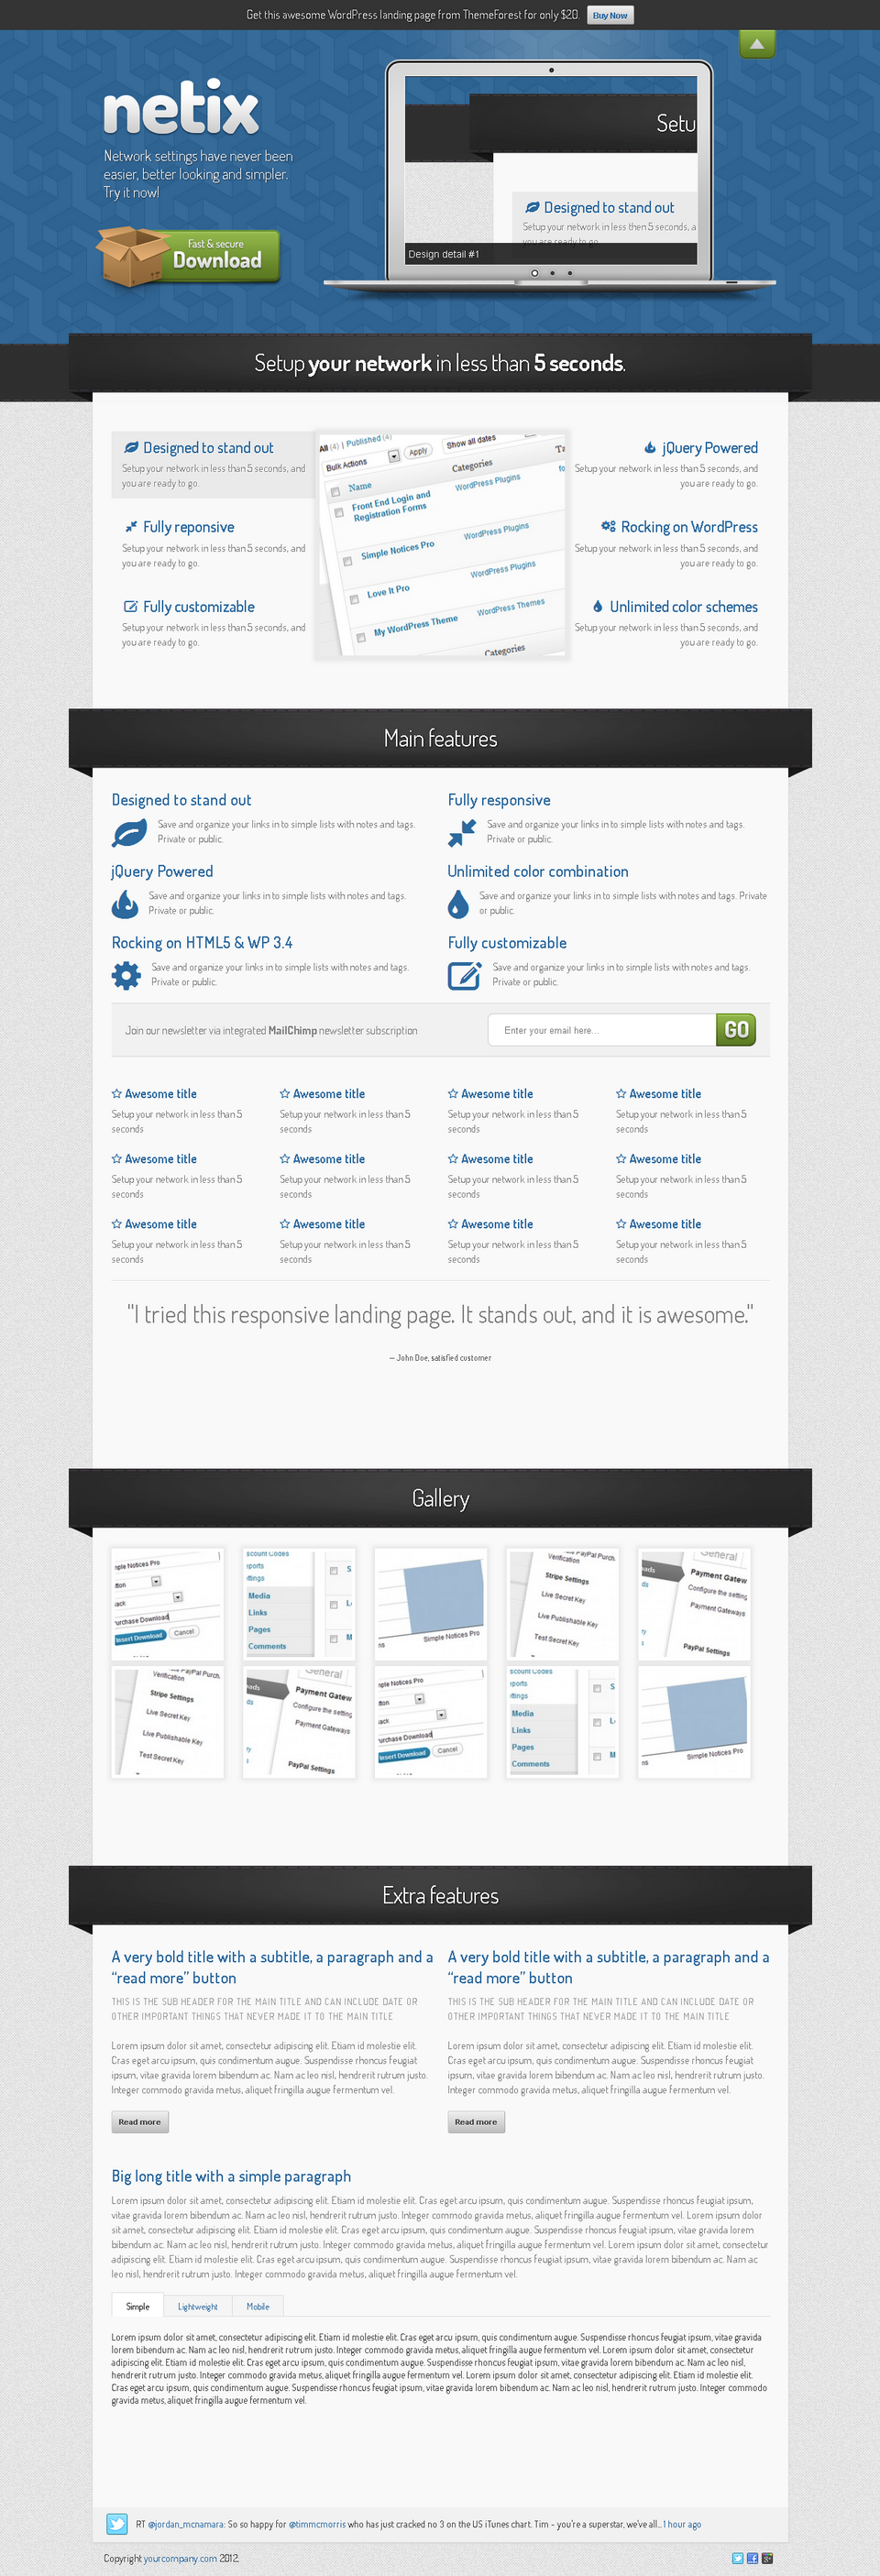 Netix - Responsive WordPress Landing Page - Netix WordPress Landing Page - default color scheme (blue)